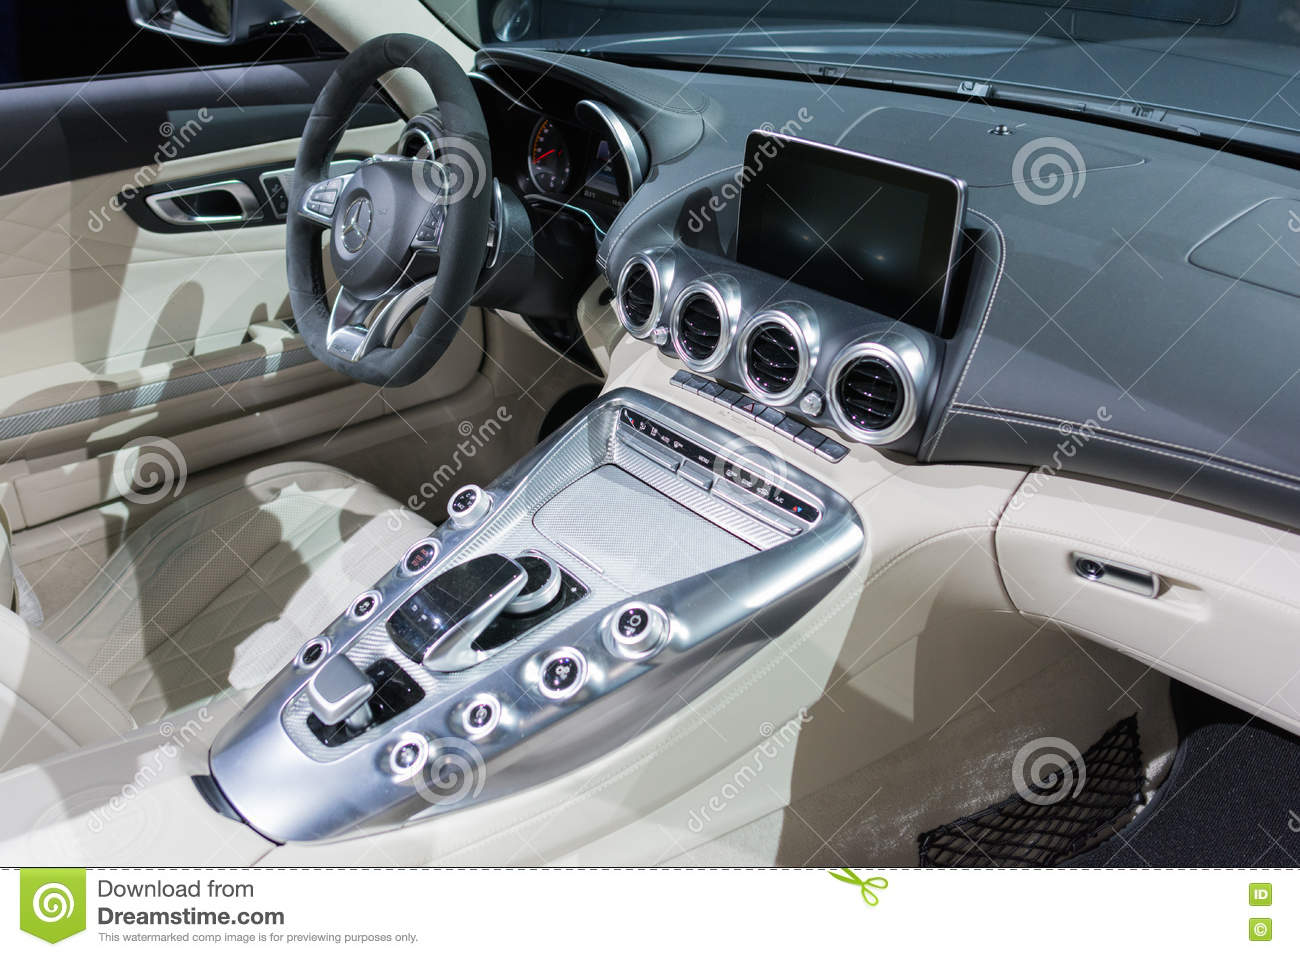 Mercedes Amg Gt C Roadster Interior Editorial Photography Image Of Brand Economic 80832082